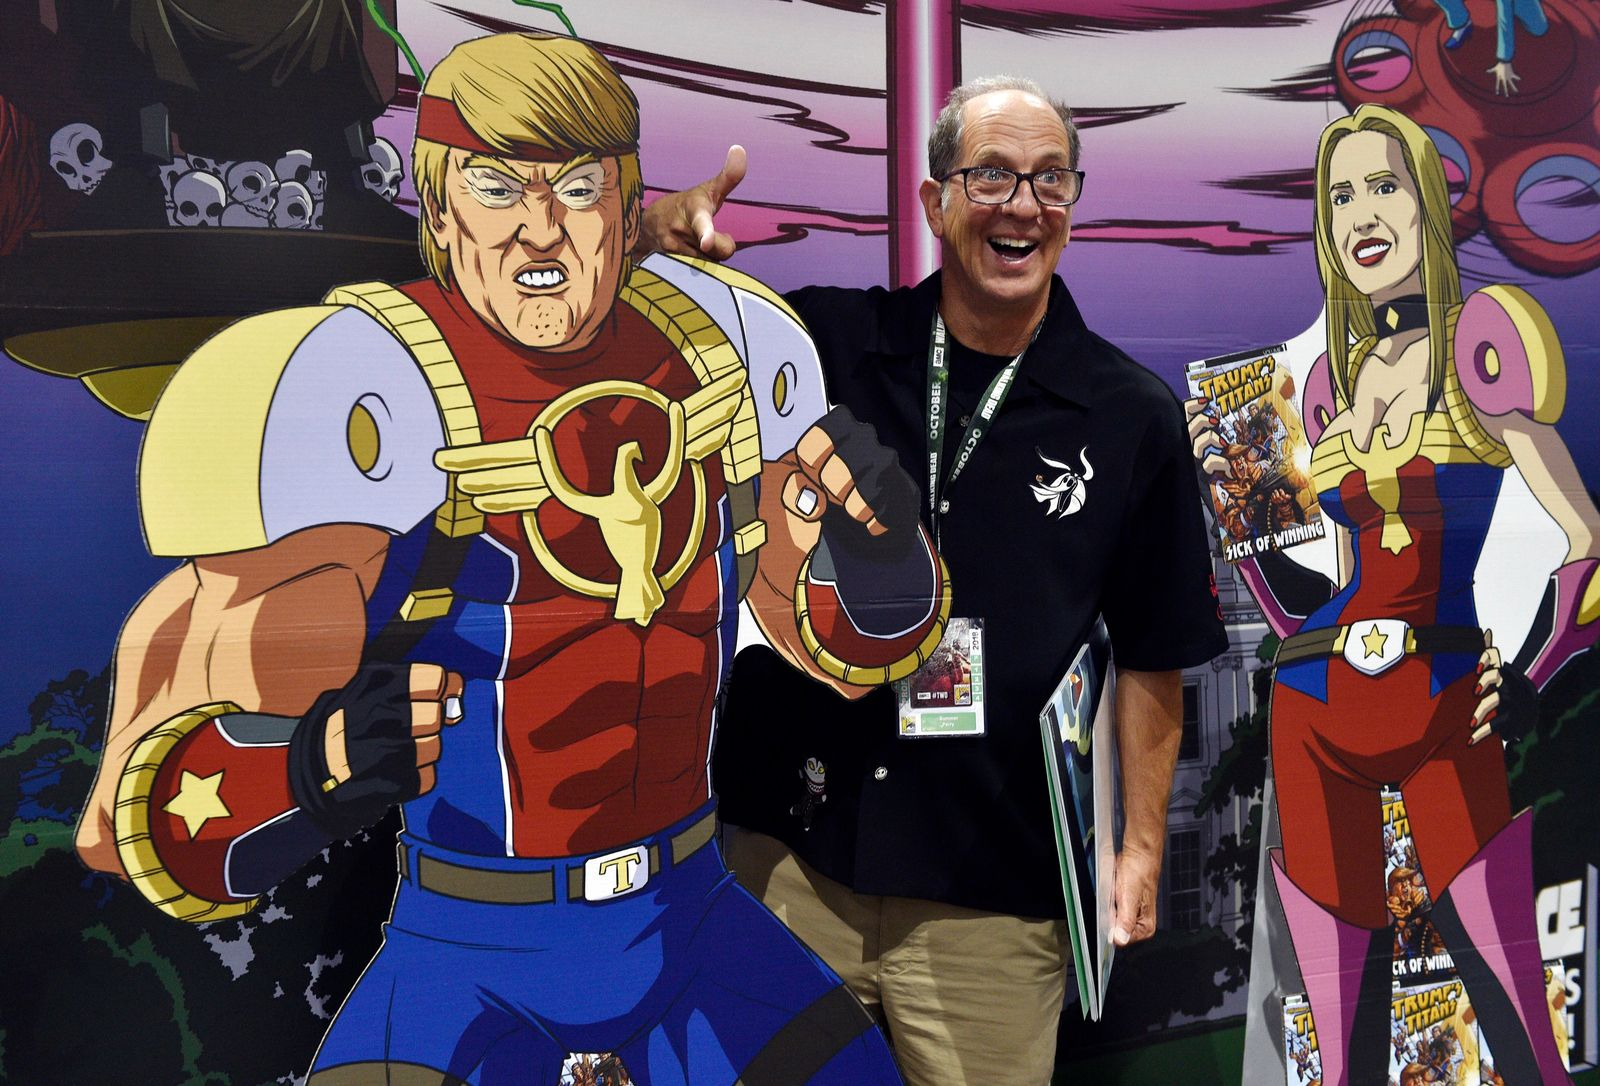 "Paul Nestor, of San Diego, poses next to cut-out figures of President Donald Trump and his daughter Ivanka at a booth for the satirical comic book series ""Trump's Titans"" during Preview Night of the 2018 Comic-Con International at the San Diego Convention Center, Wednesday, July 18, 2018, in San Diego. (Photo by Chris Pizzello/Invision/AP)"